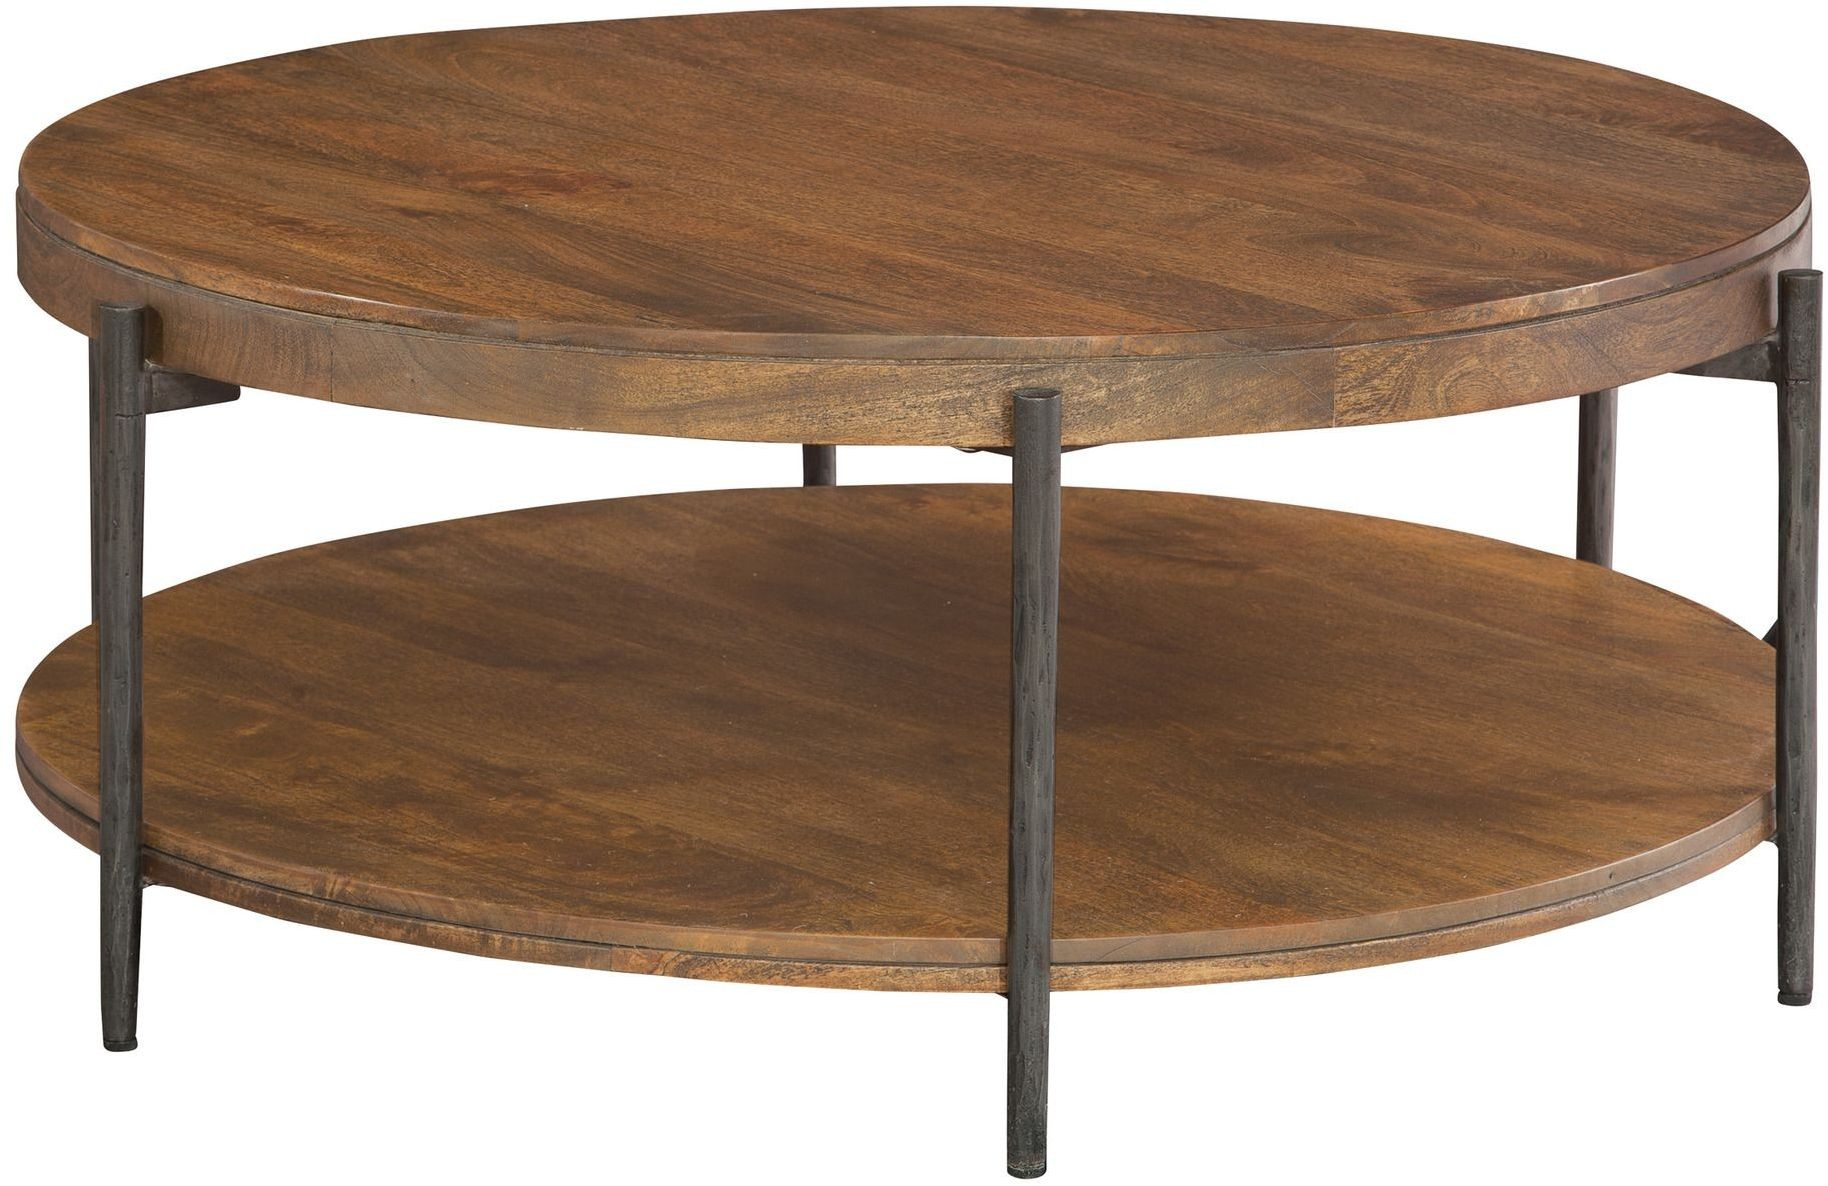 bedford park brown and gray round coffee table from hekman furniture coleman furniture. Black Bedroom Furniture Sets. Home Design Ideas